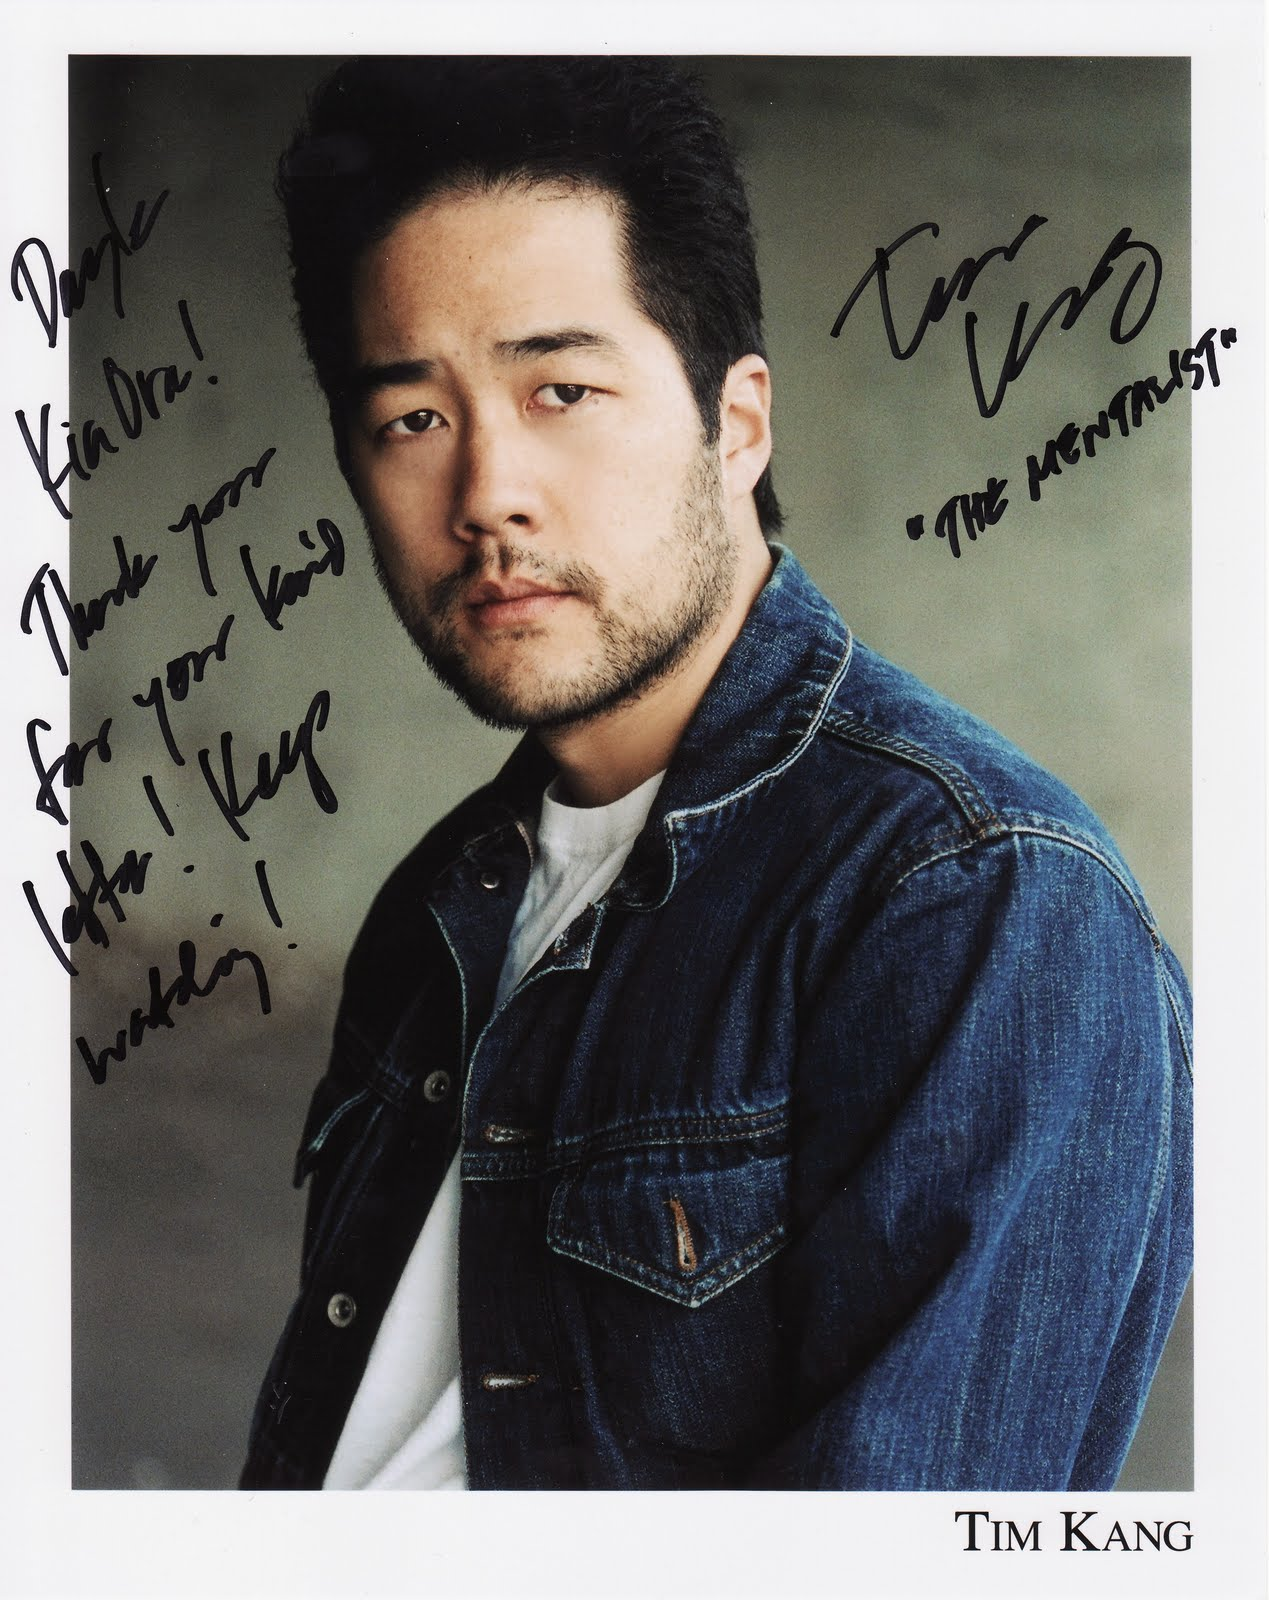 tim kang salary